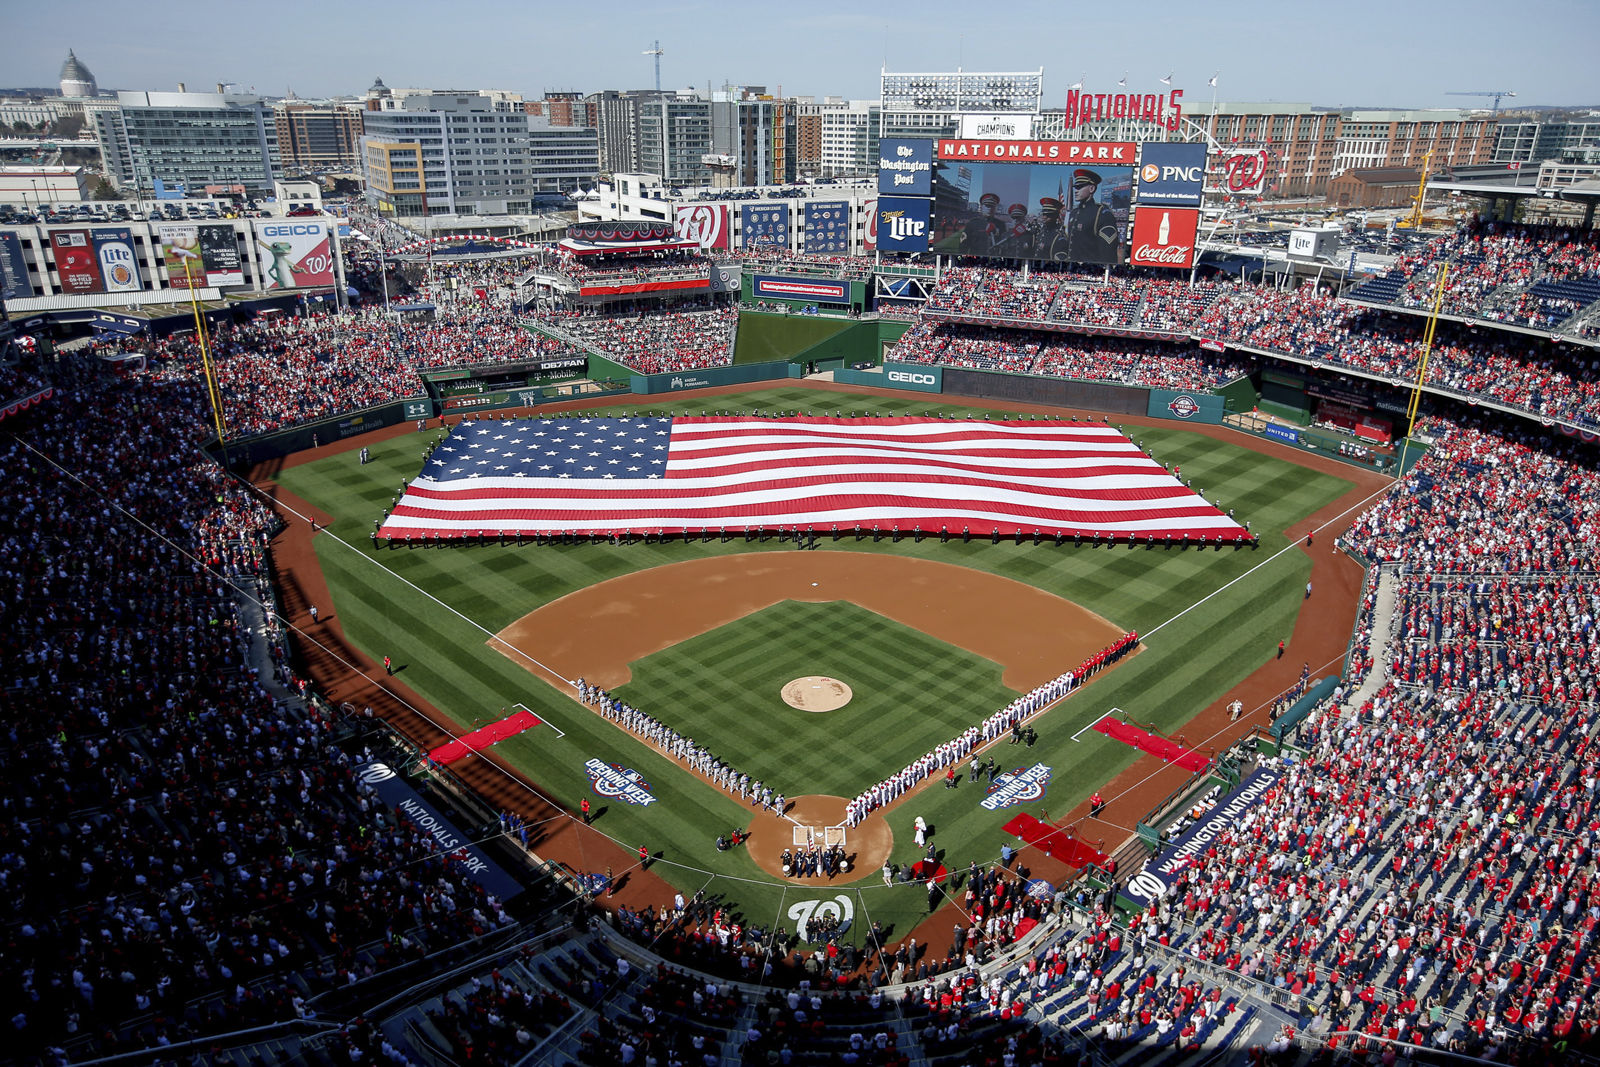 Nationals Park cracked the 10 most expensive parks. It comes in at No. 8 with an average cost of $77.50. (AP Photo/Andrew Harnik, File)